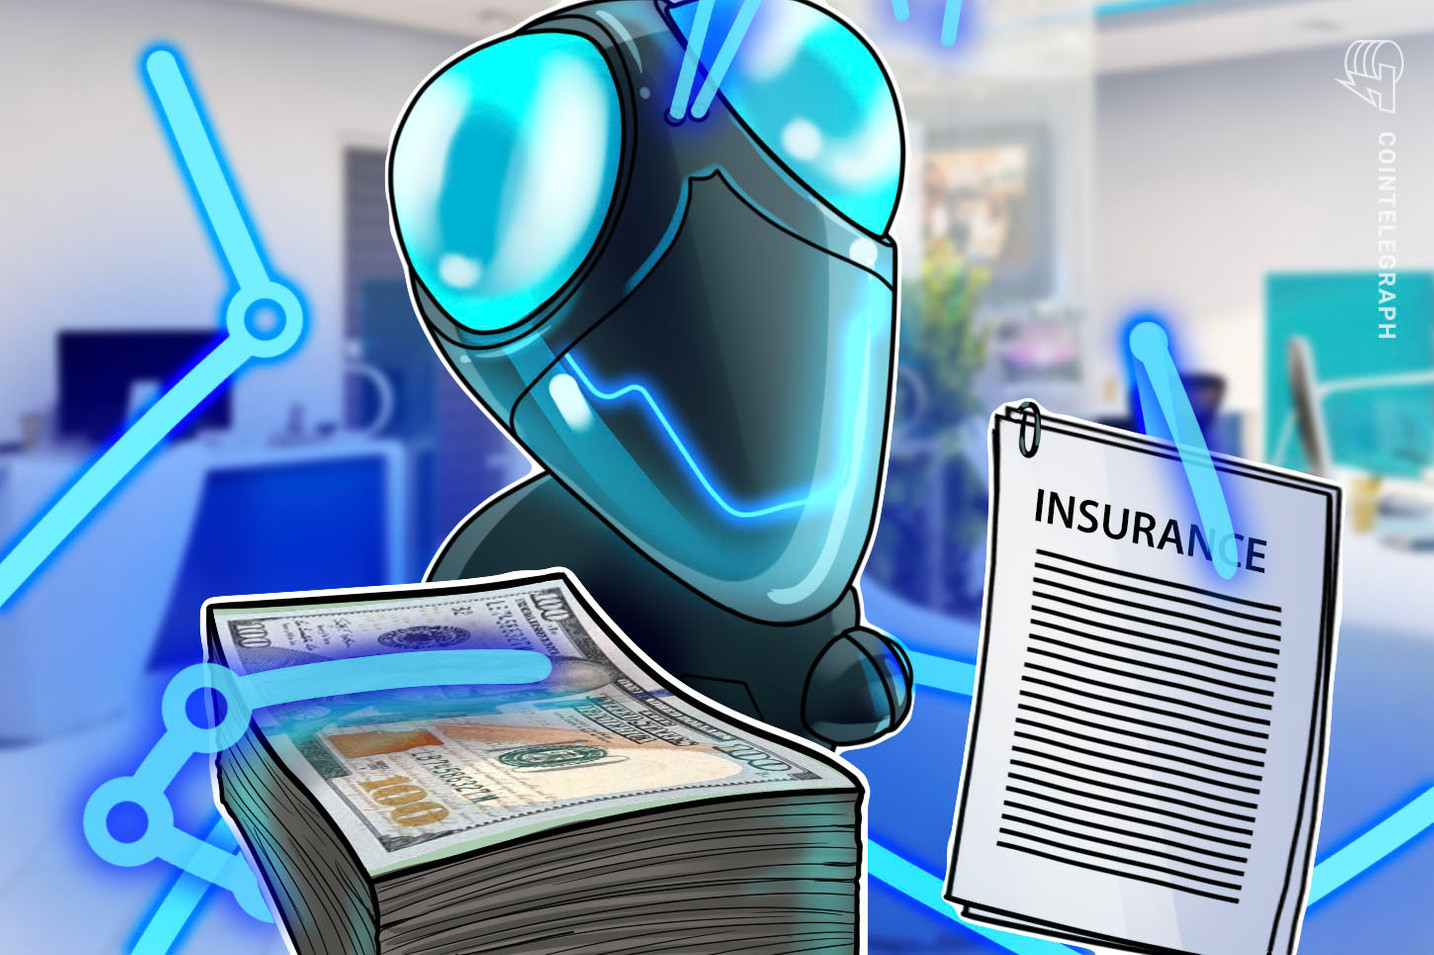 Linux Foundation launches blockchain platform for insurance industry